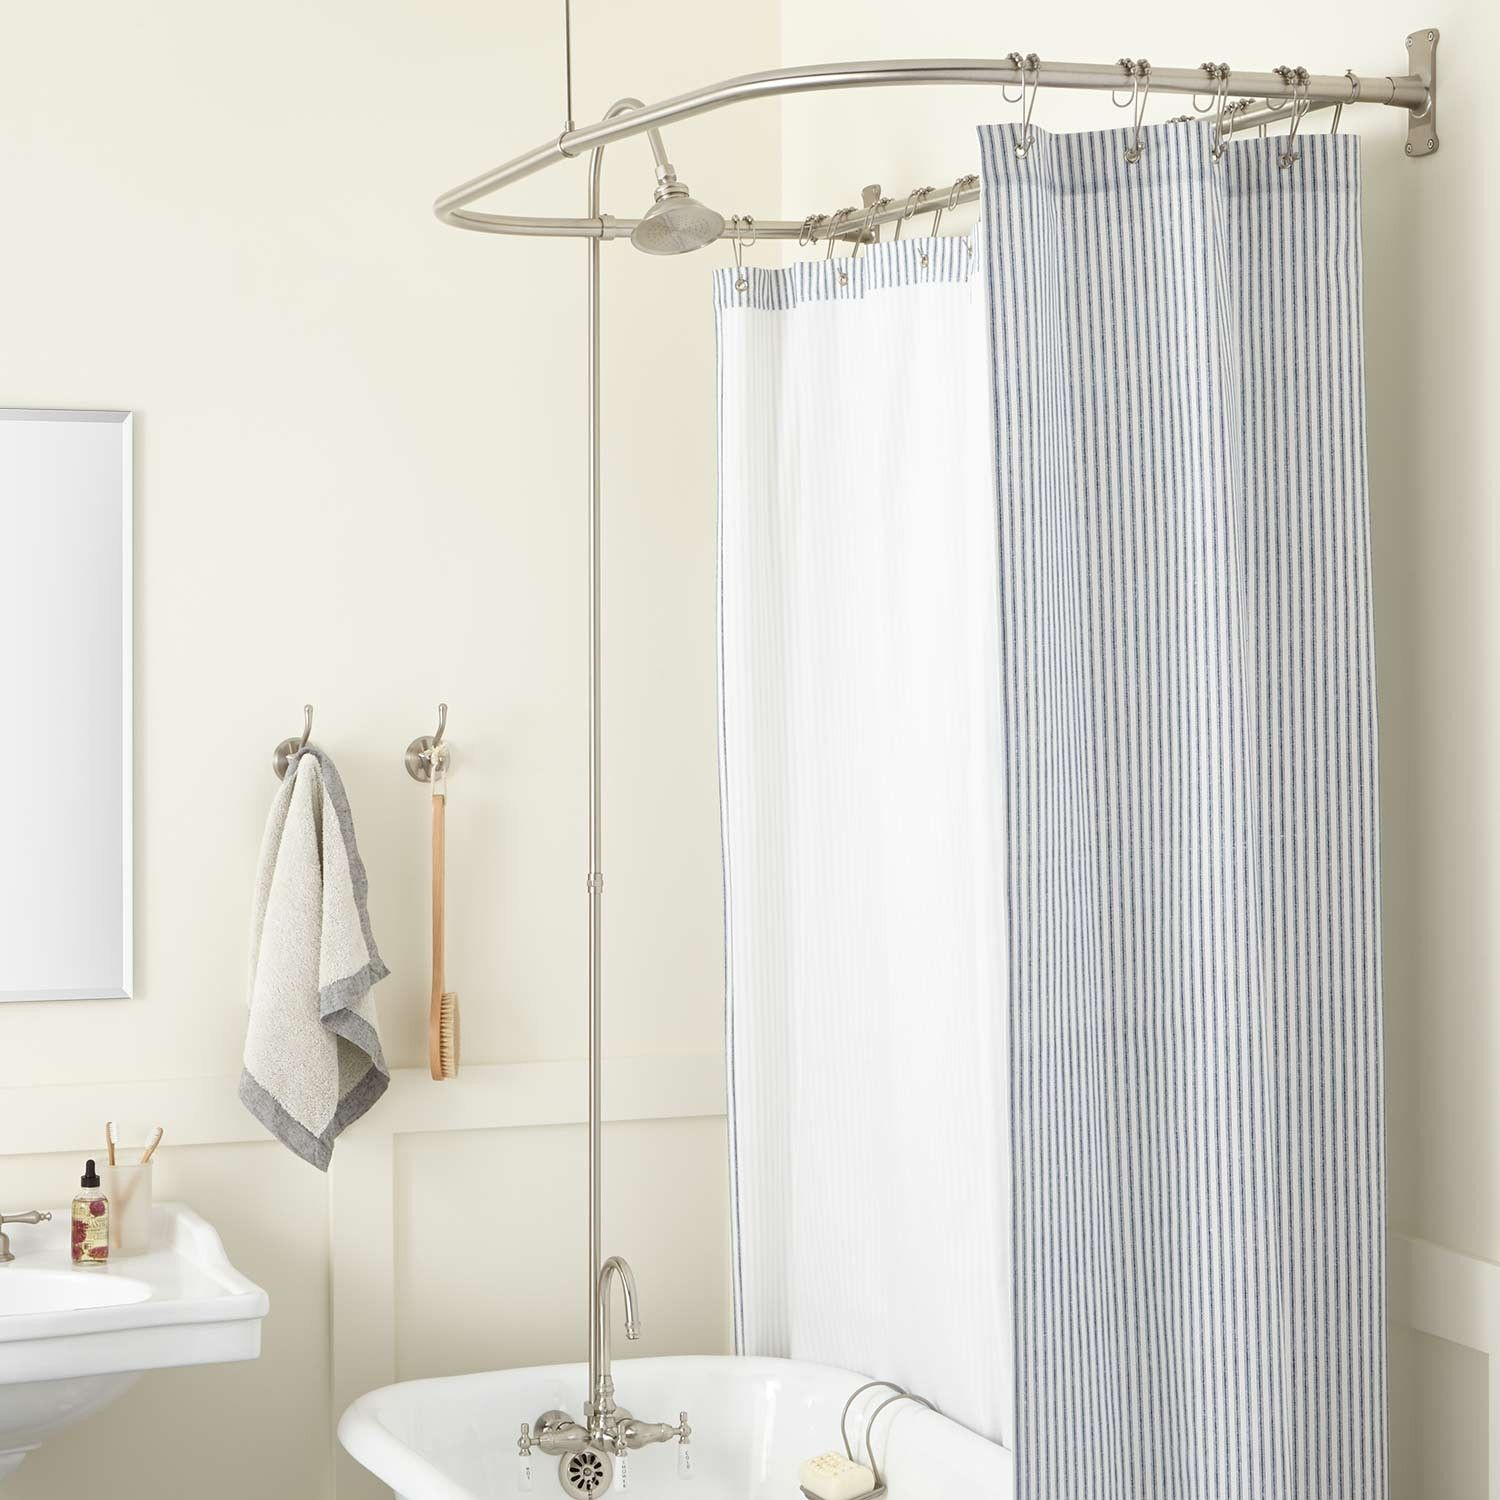 Gooseneck Clawfoot Tub Shower Conversion Kit D Style Solid Brass